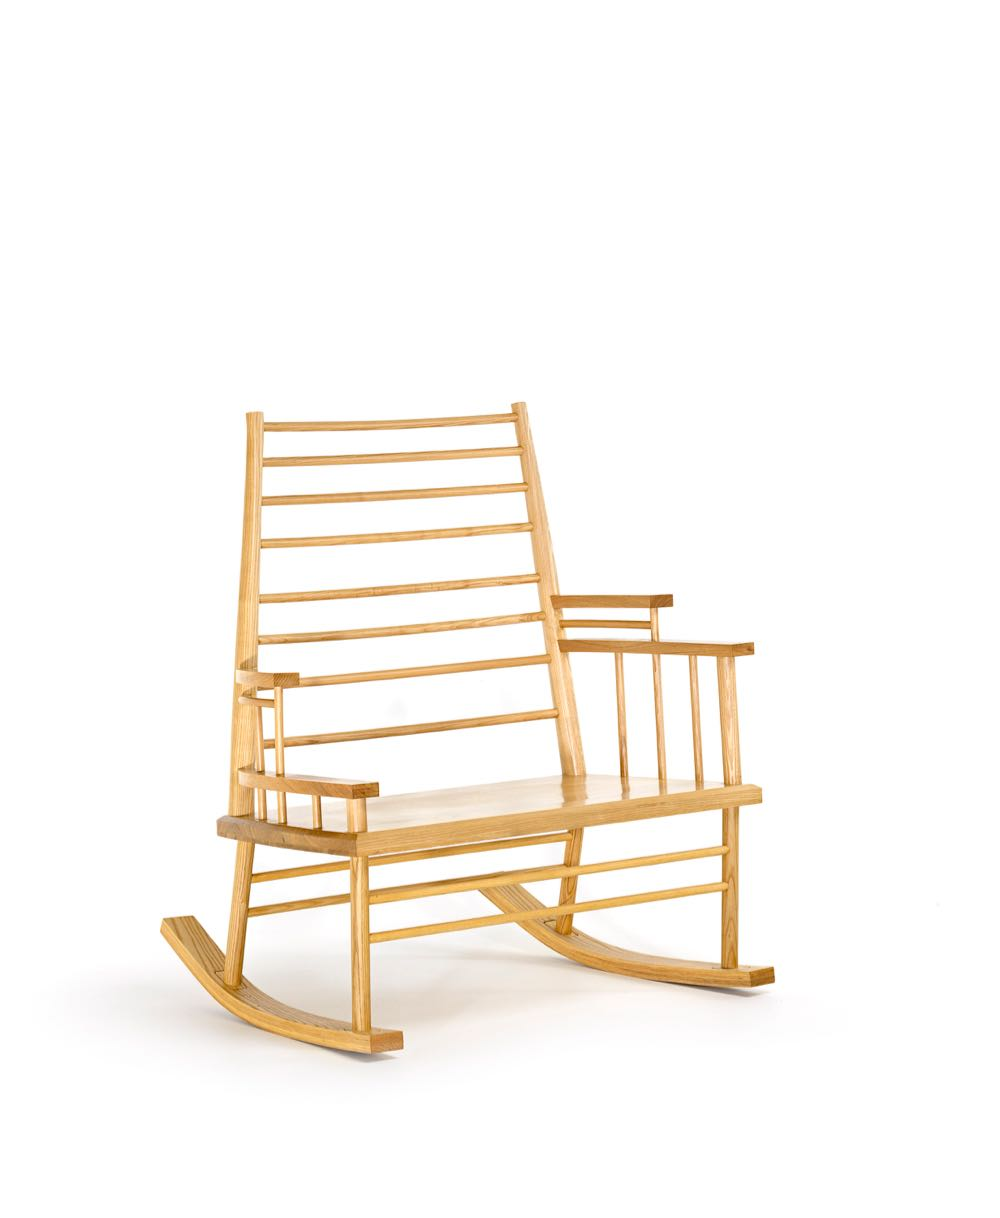 Trent Jansen's 'Chinaman's File Rocking Chair' for Broached Commissions 2013. Manufactured by JP Finsbury, Sydney Victorian ash and Manchurian ash, rubber, and steel. 112.7 x 96.8 x 79.5 cm